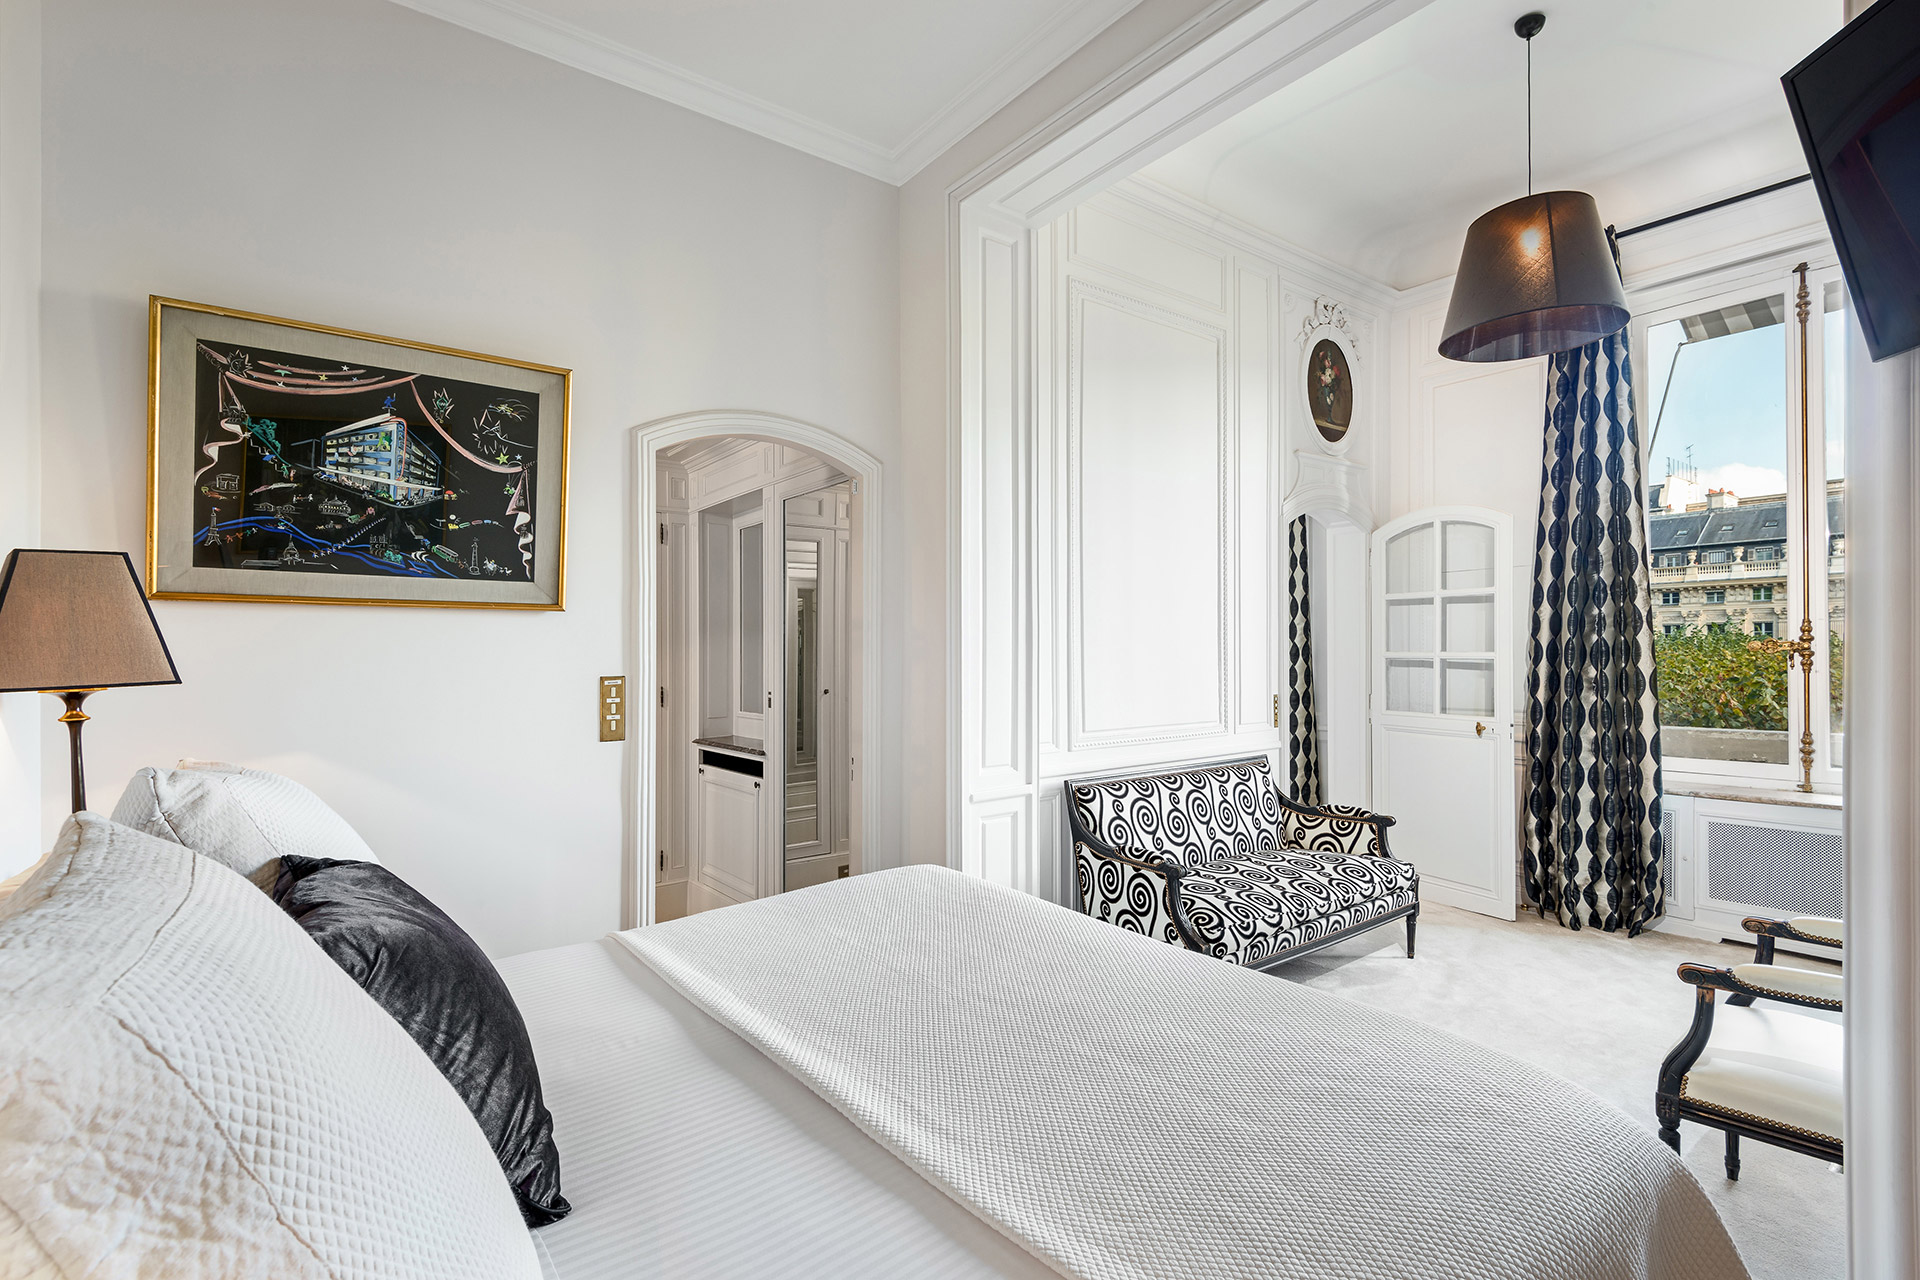 Wake up to Parisian views in the bedroom of the Chopine vacation rental offered by Paris Perfect